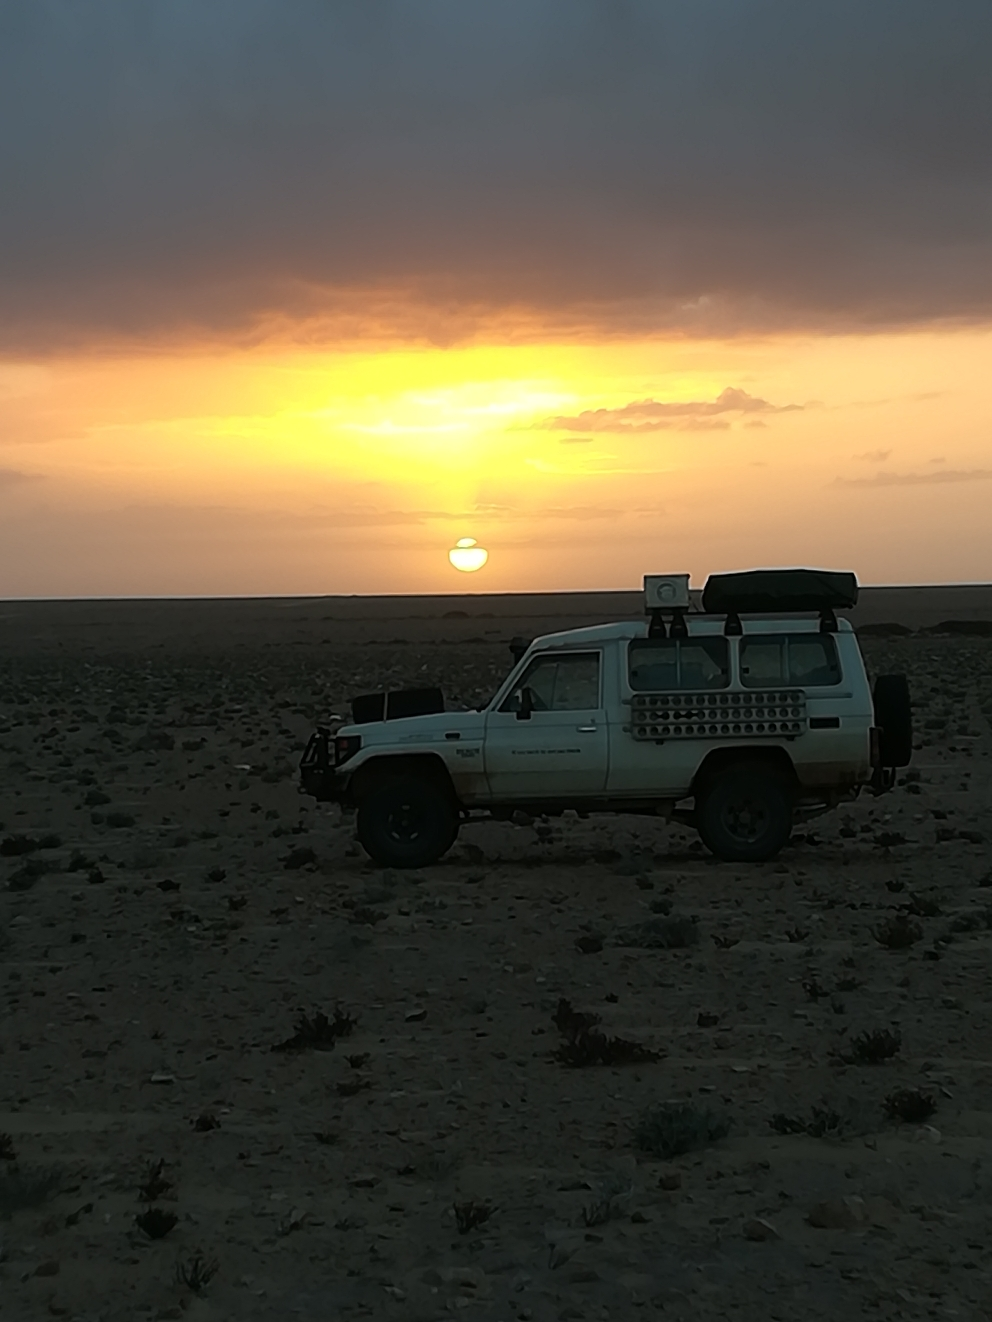 Sonnenaufgang in der West-Sahara